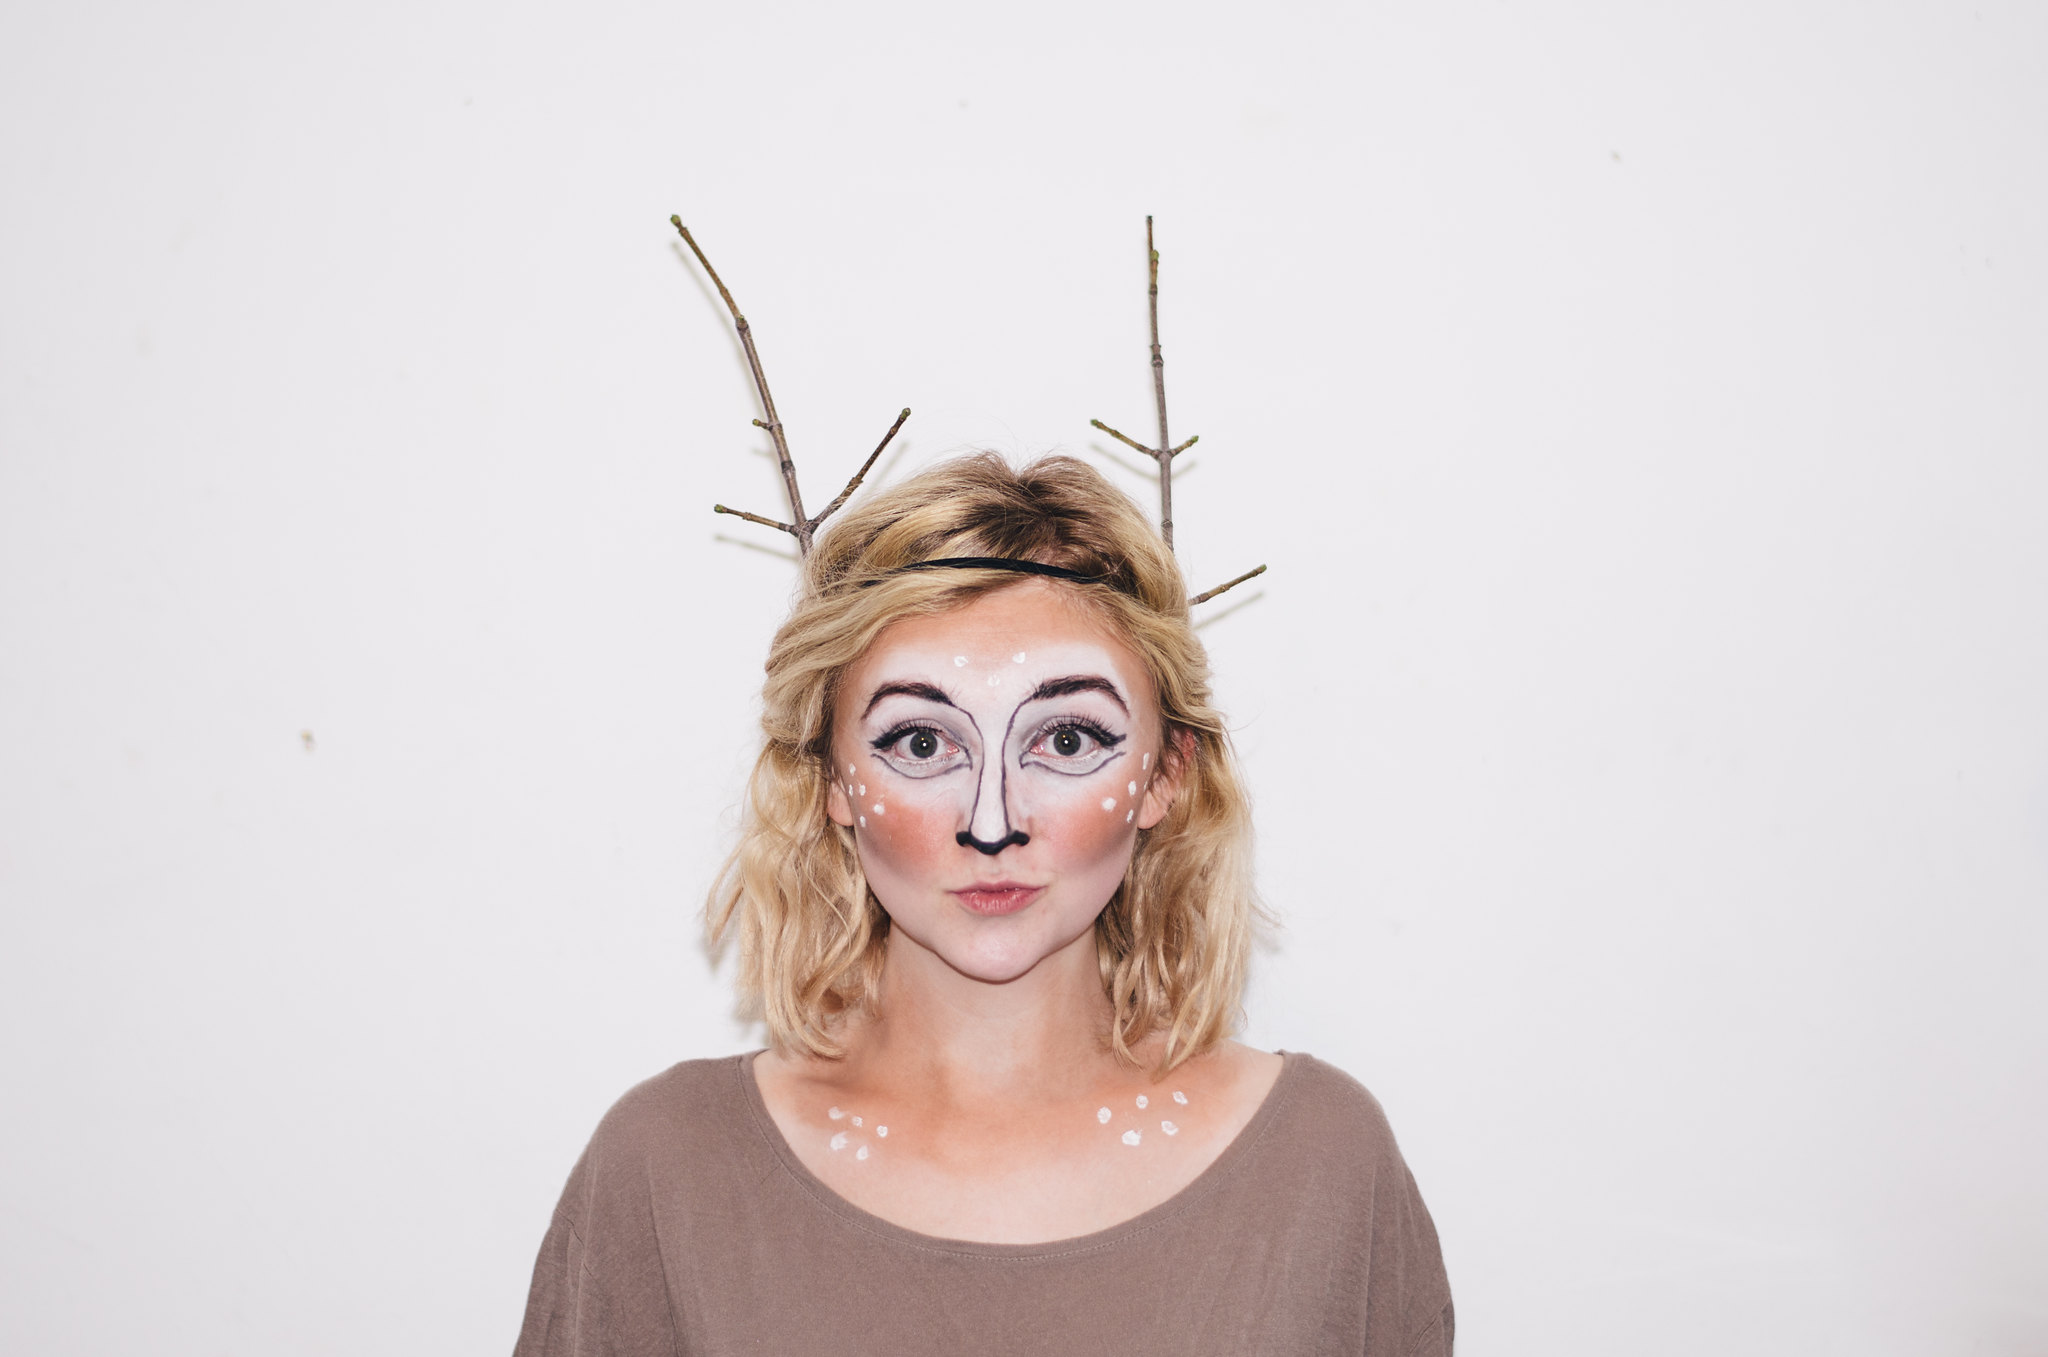 Deer Costume Makeup Tutorial on juliettelaura.blogspot.com  sc 1 st  Juliette Laura & OH Deer! Deer in Headlights Couple Costume for Halloween | Juliette ...